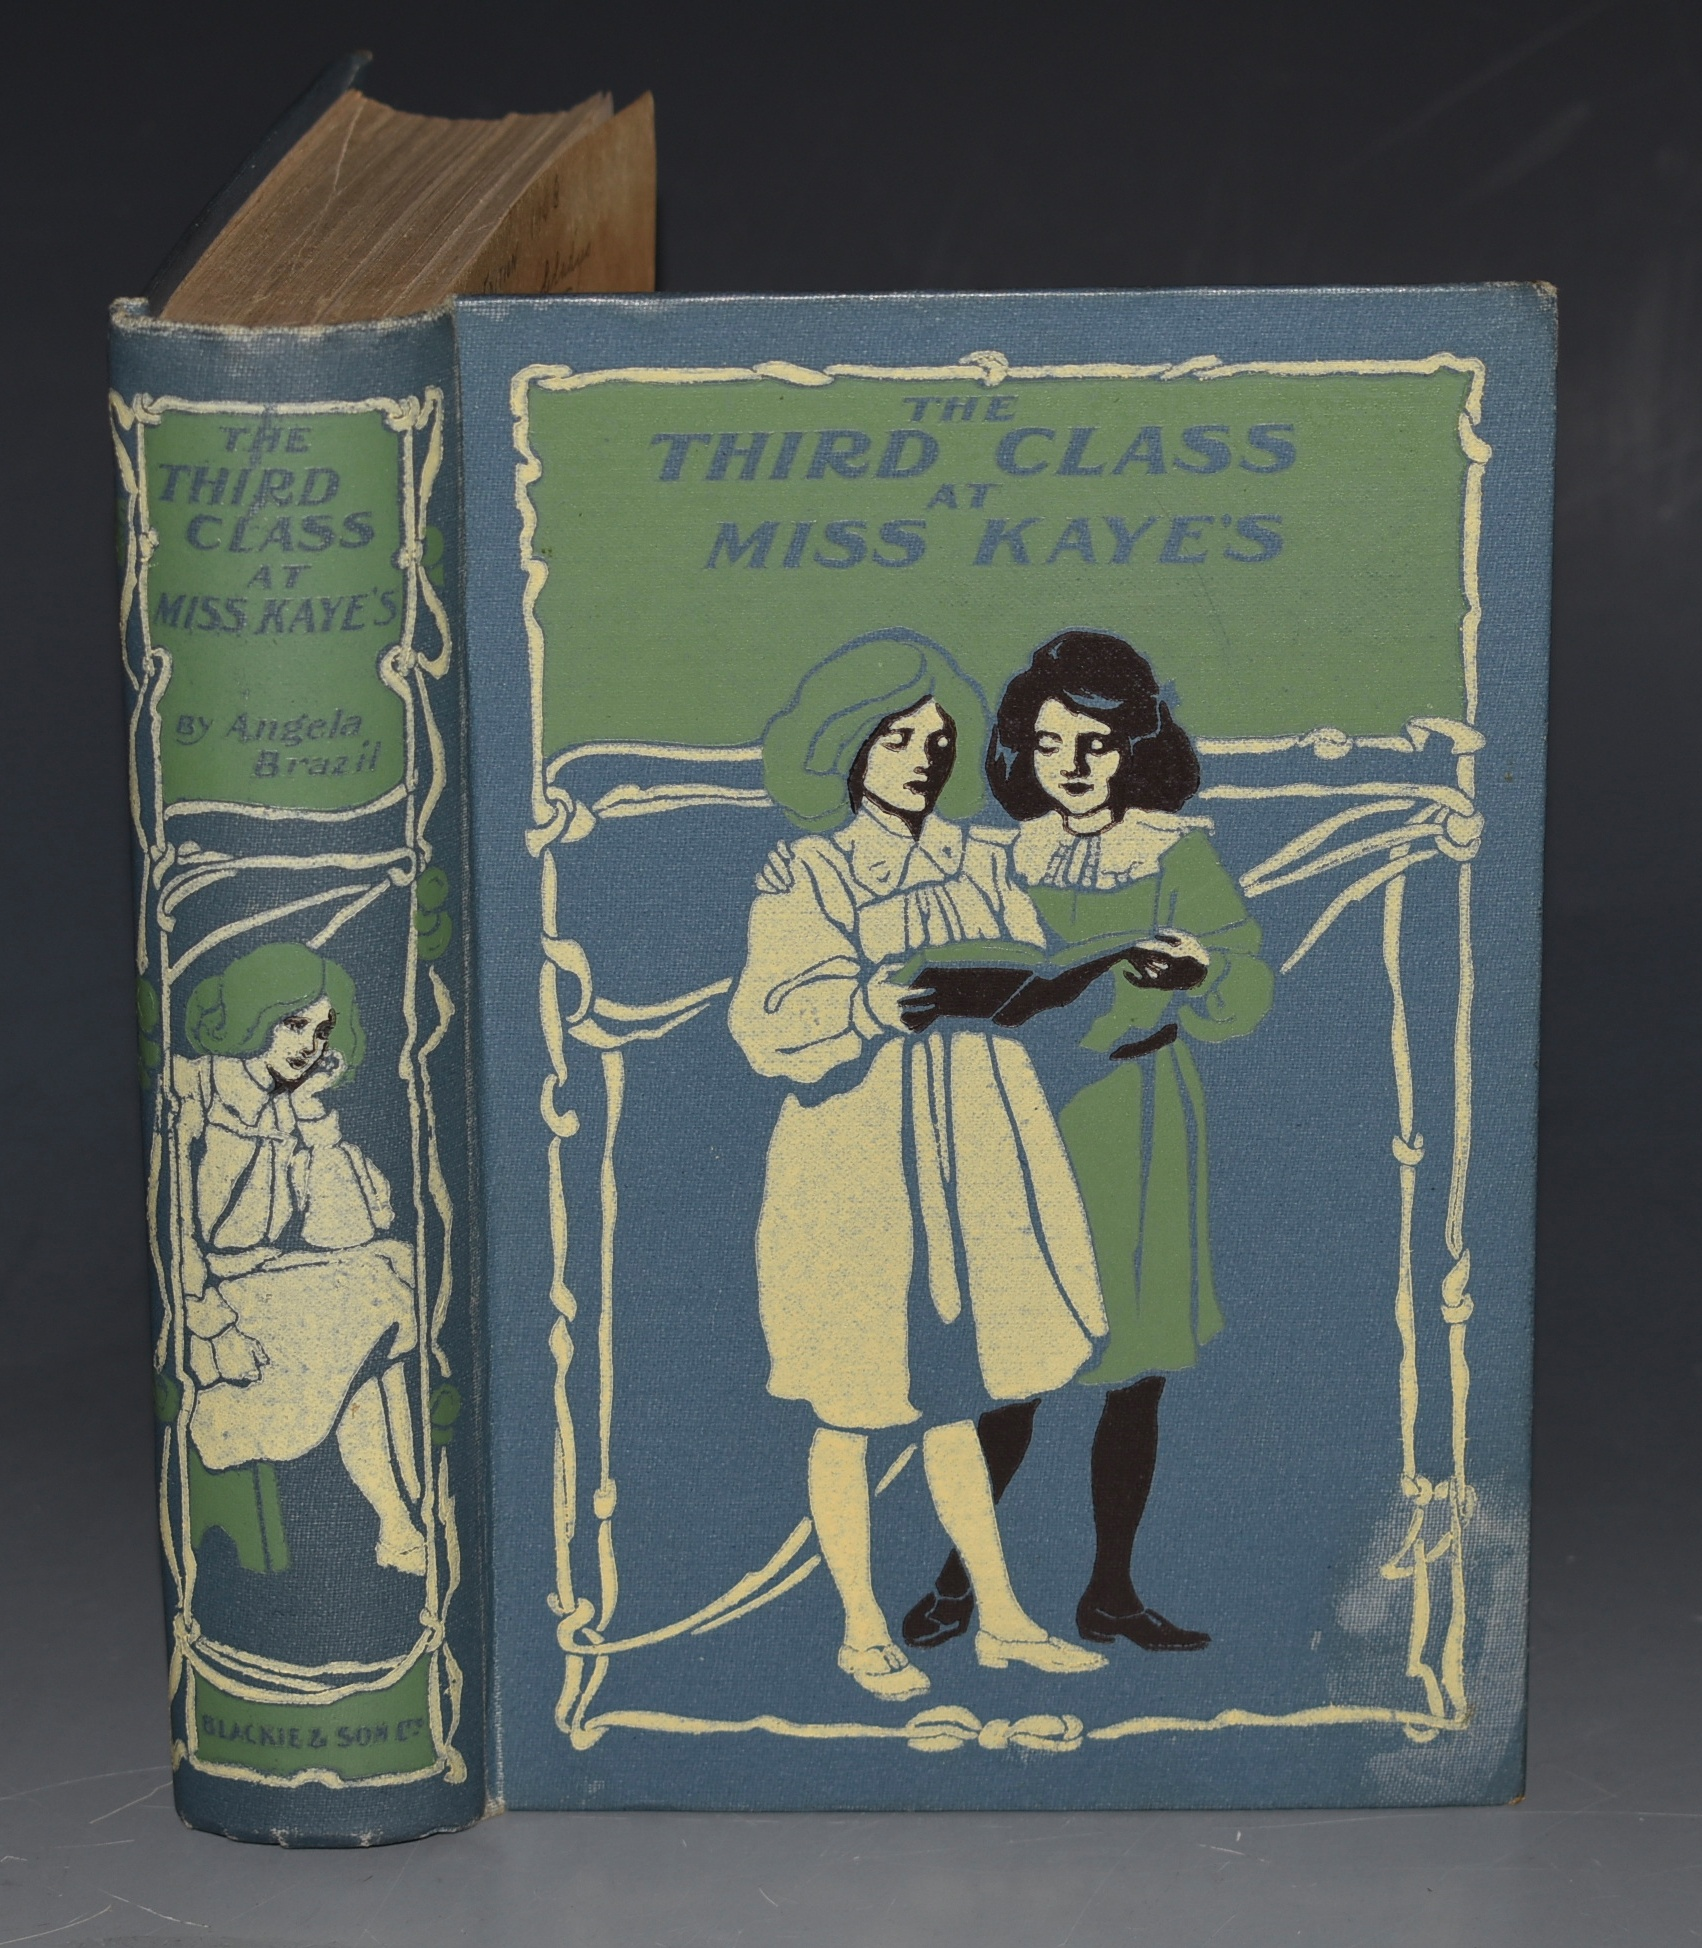 Image for The Third Class at Miss Kaye's. Illustrated by Arthur A. Dixon.